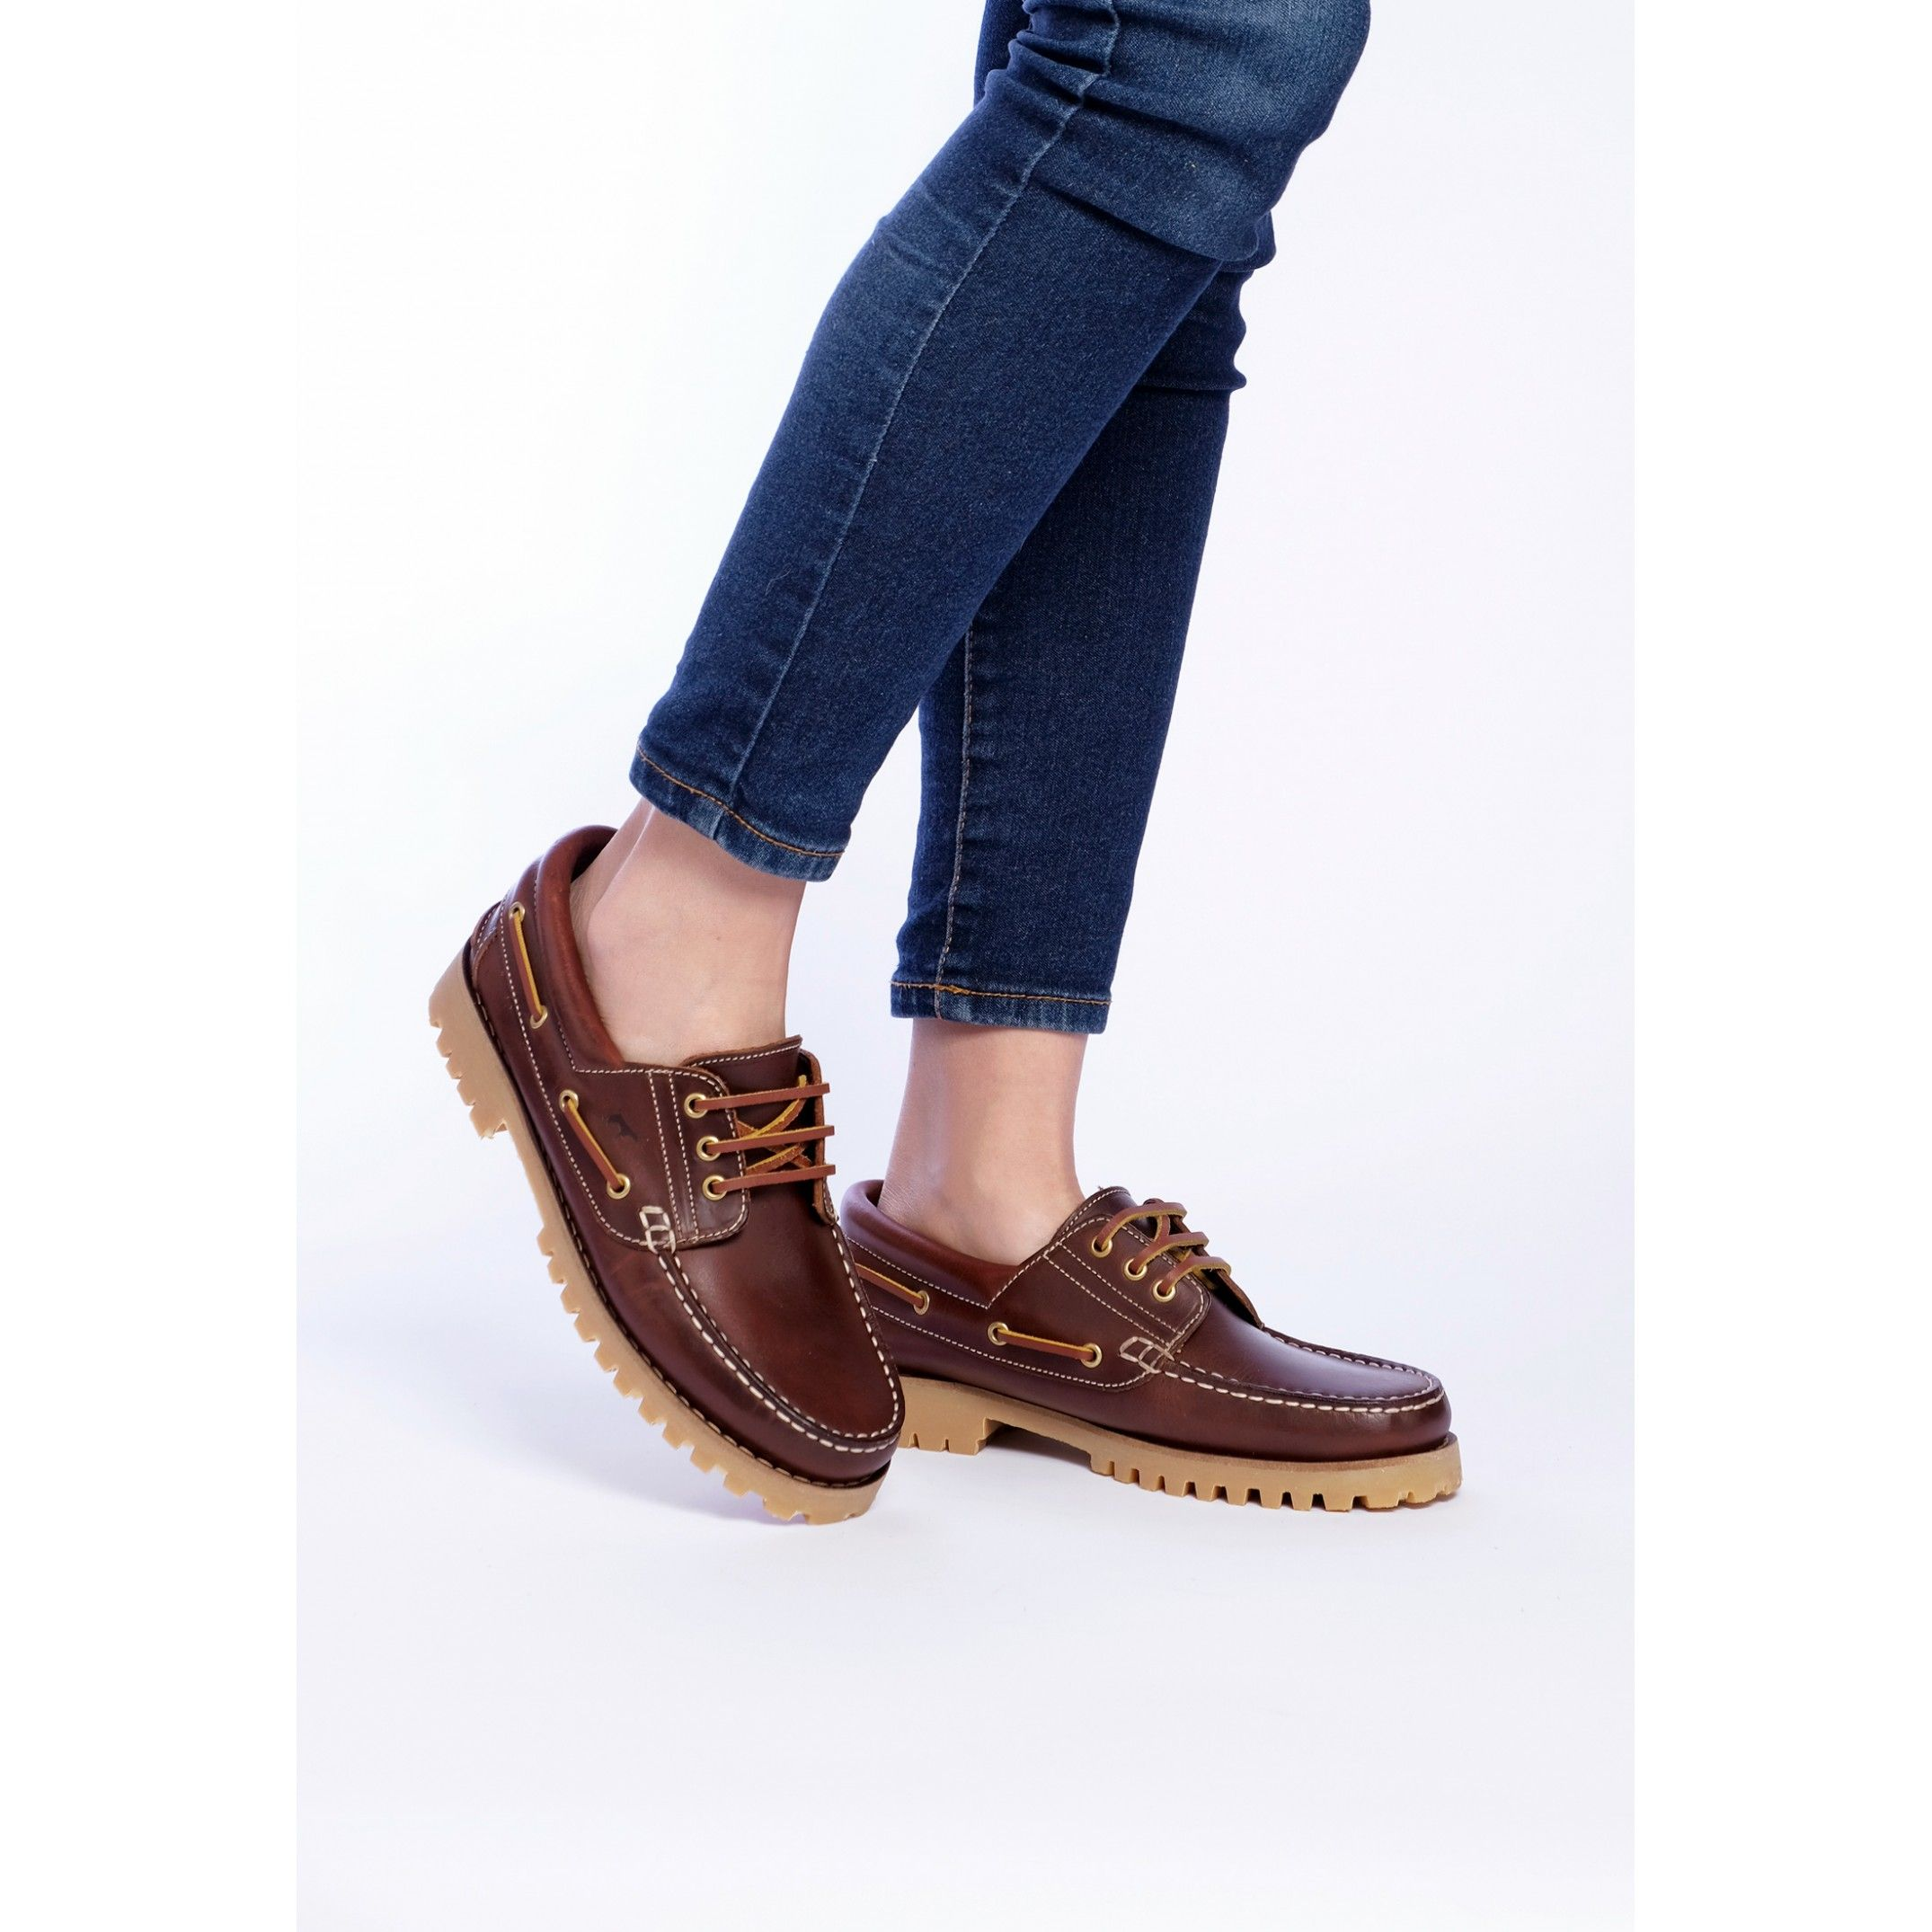 Leather Boat Shoes for Women Castellanisimos Comfort High Quality Shoe